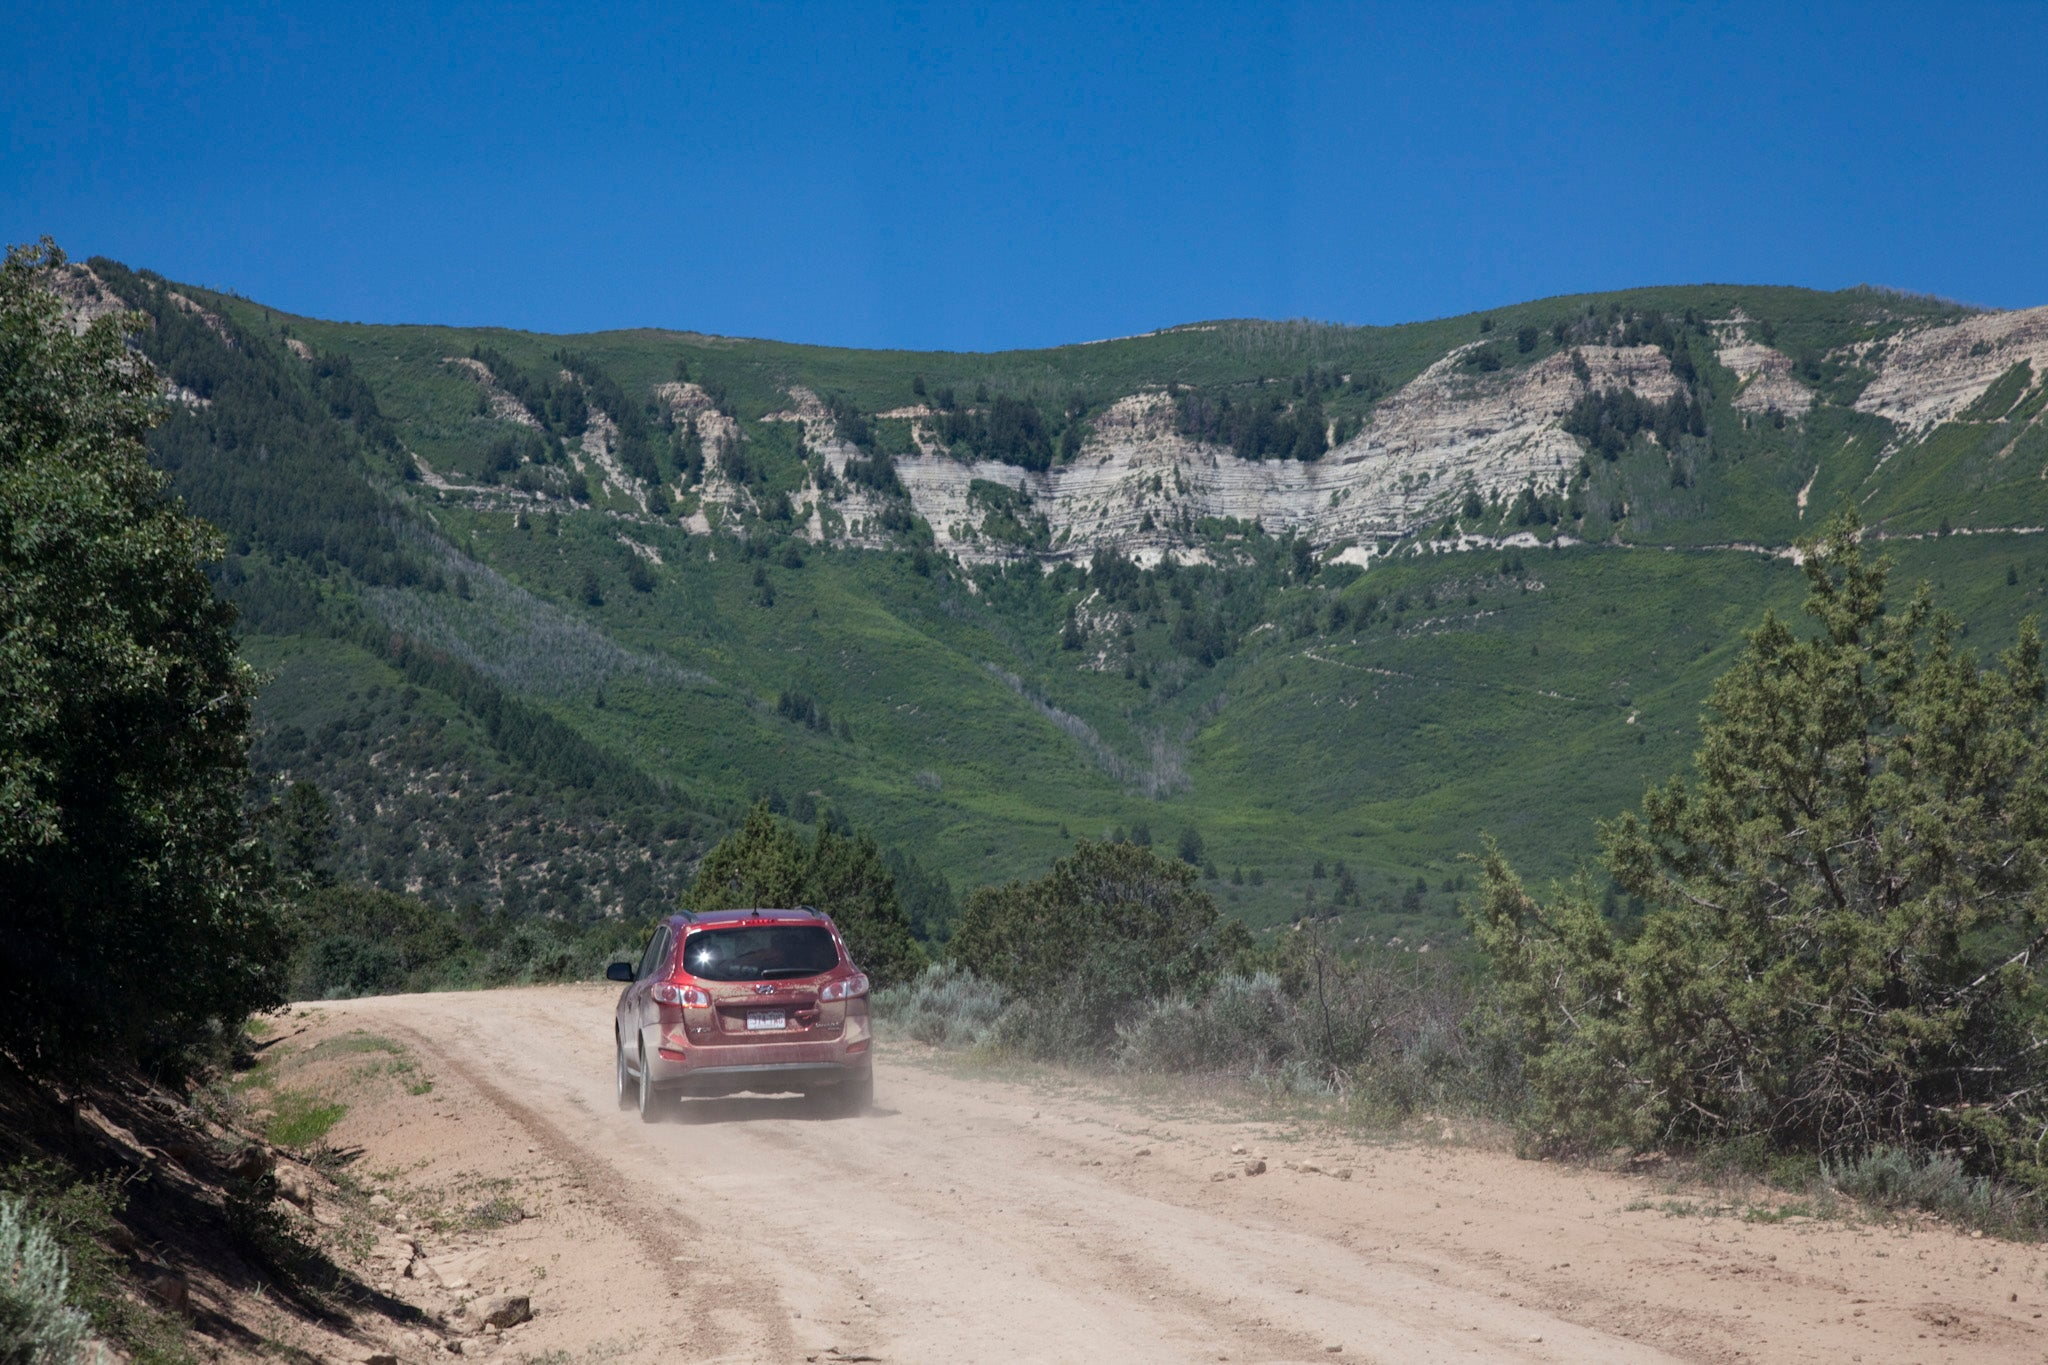 Exploring the Roan Plateau: Day Three